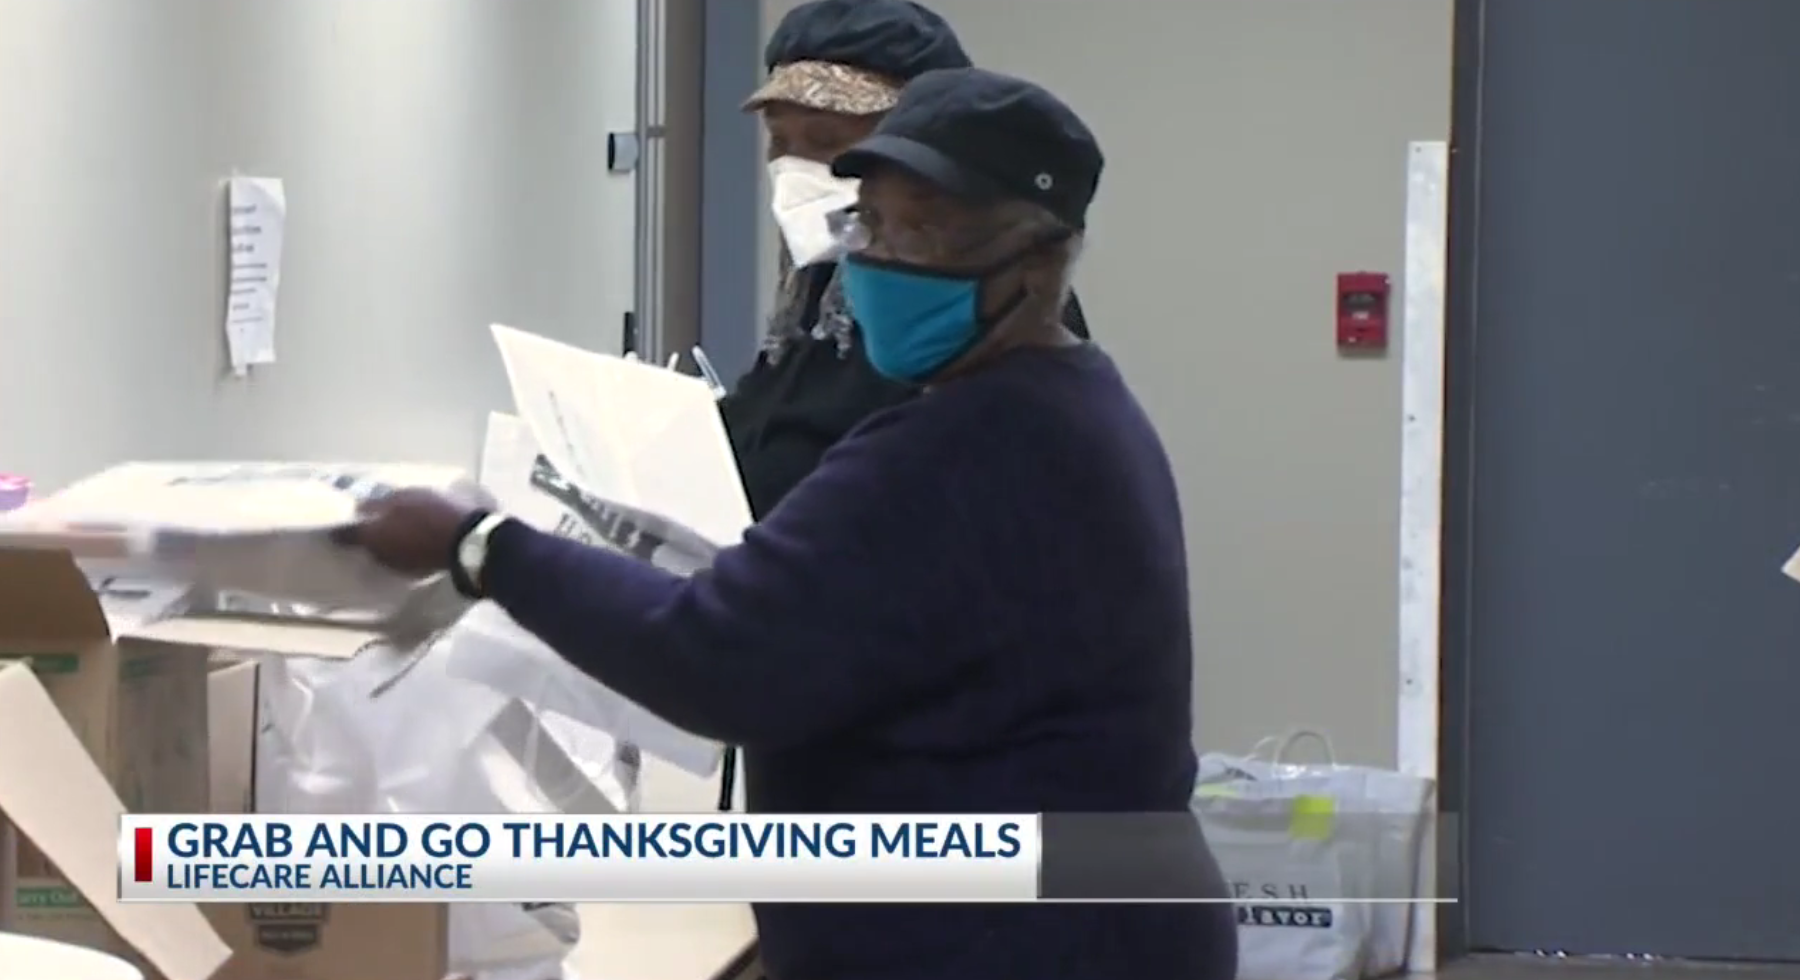 Grab and Go Thanksgiving Meals being prepared for distribution